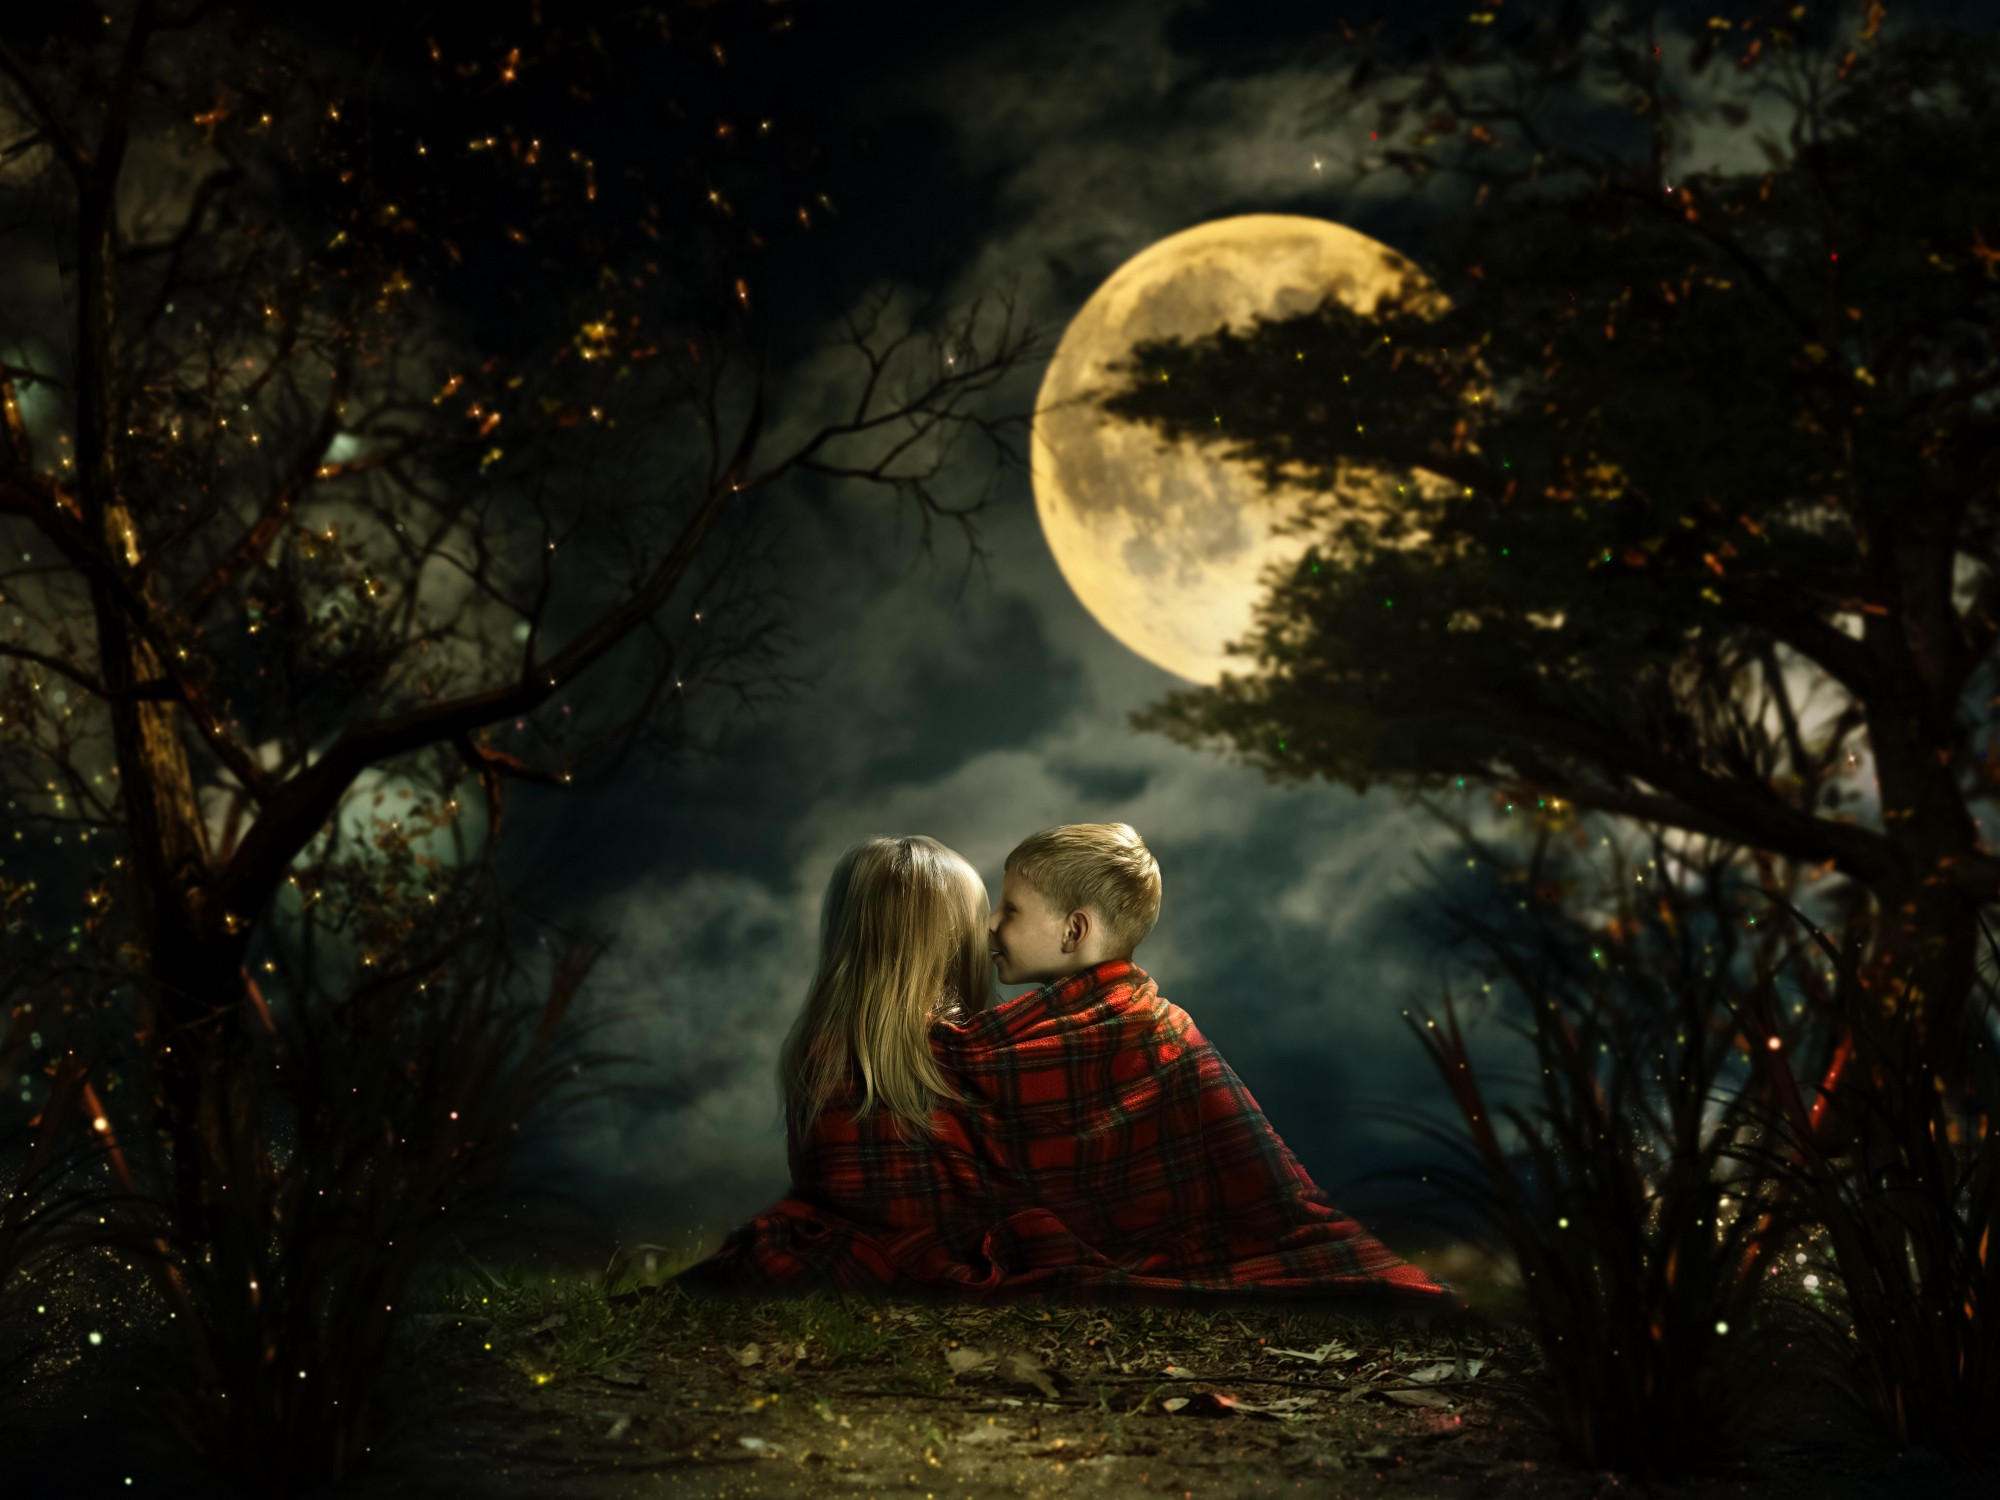 Children whispering in the fairy magic forest. Big moon, night, little boy and girl. Picture—a fairy tale for children